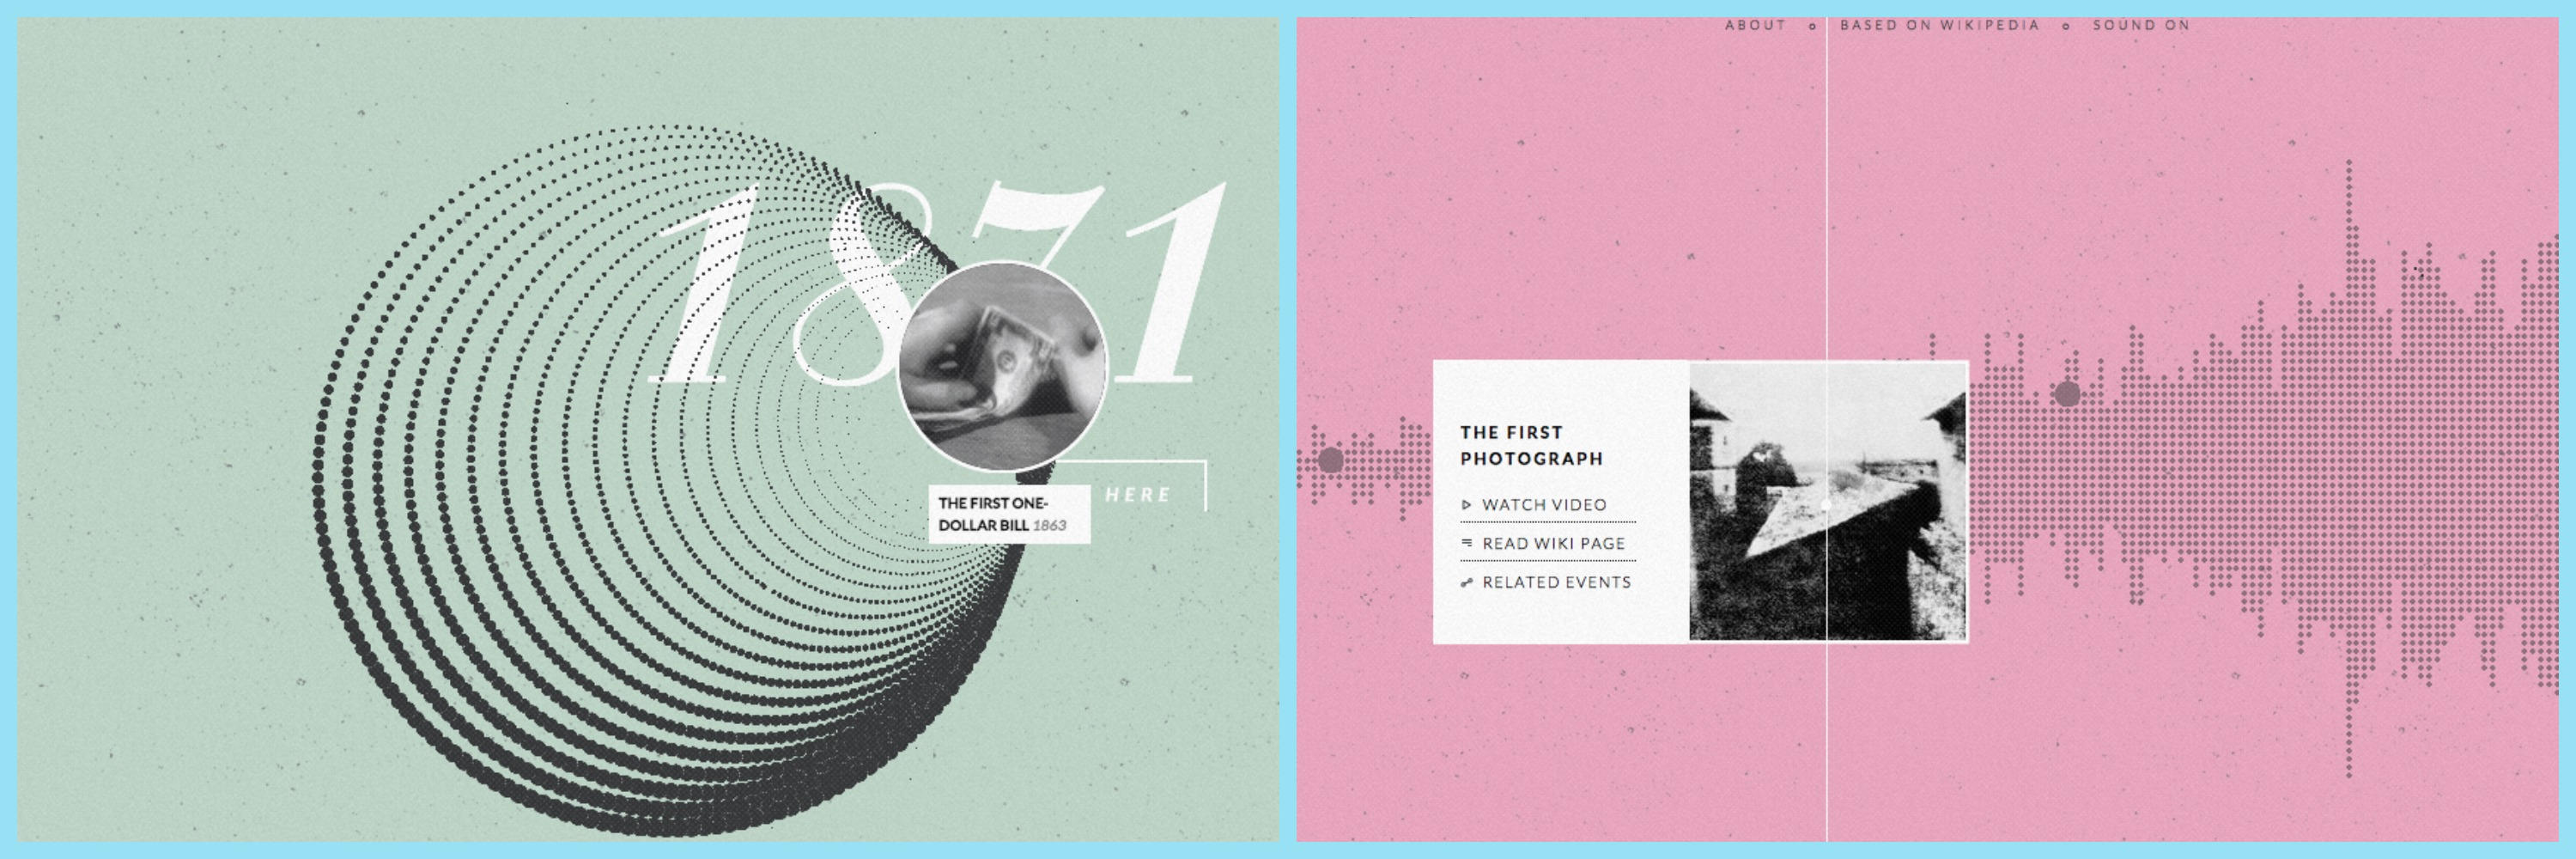 histography - visualizations based on wikipedia history events